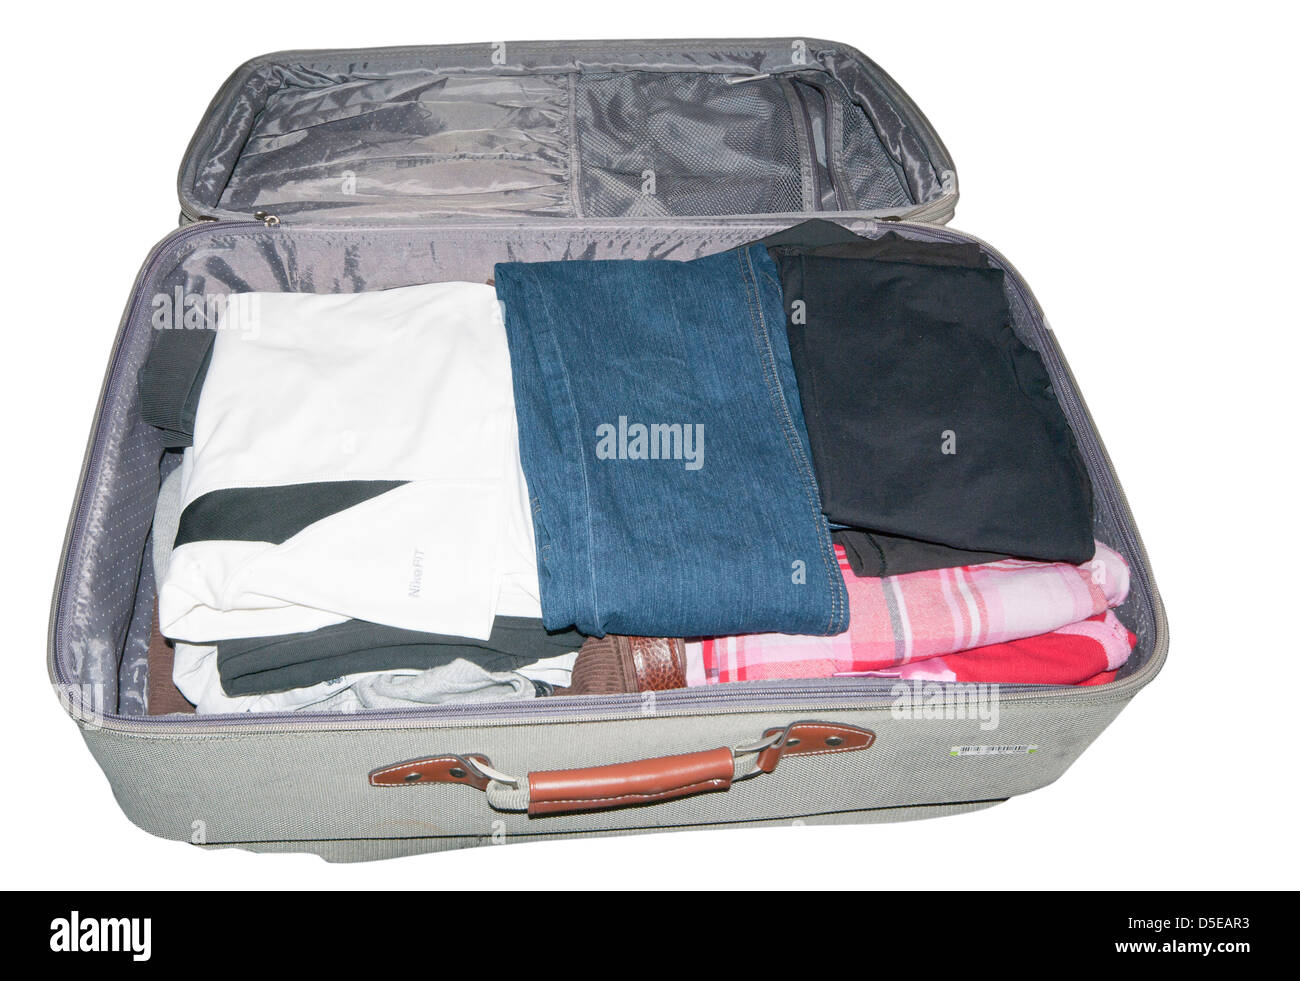 Packed Open Suitcase - Stock Image